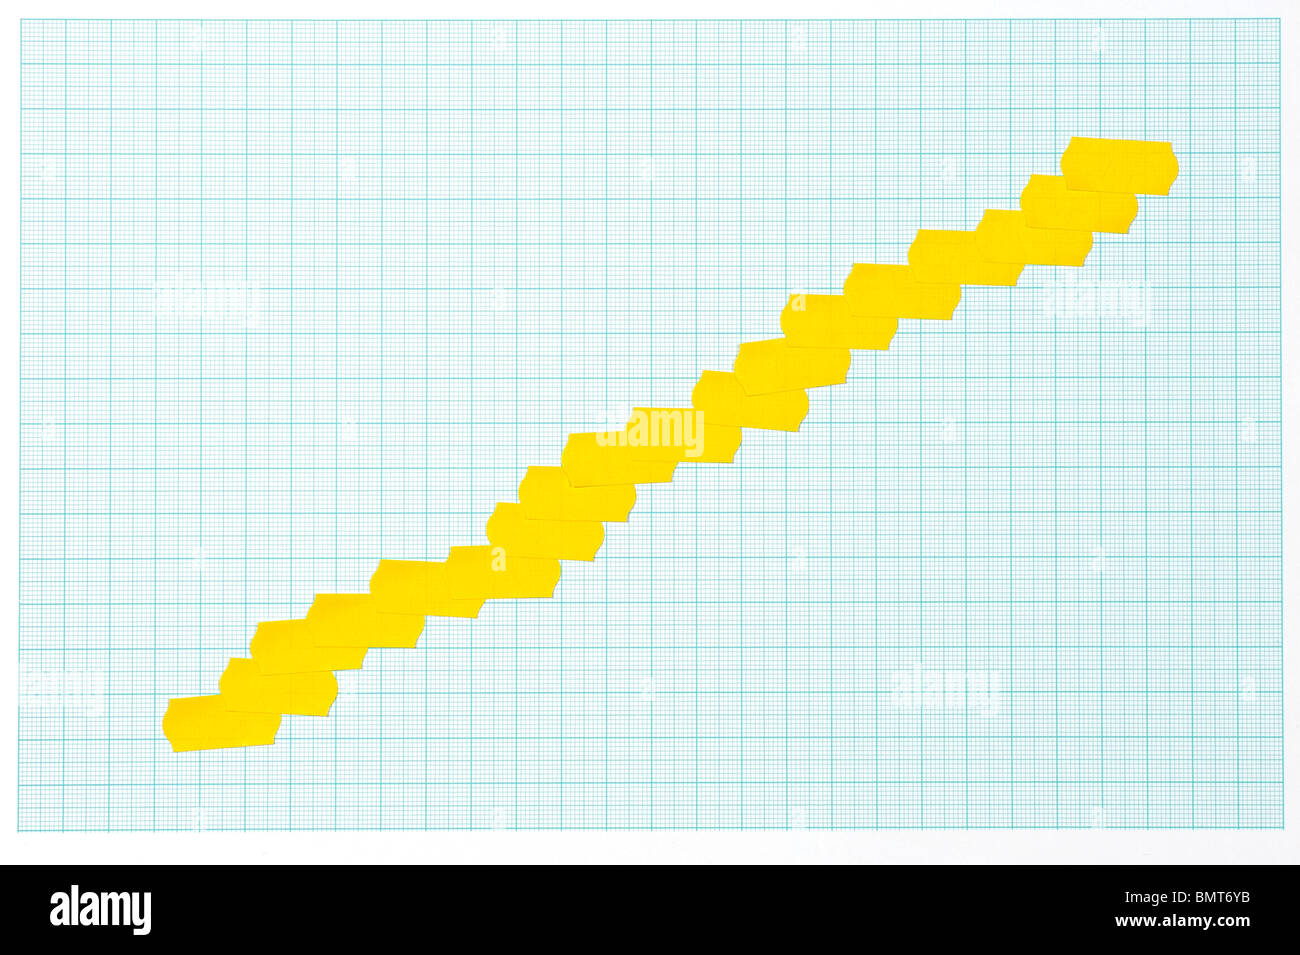 Shop price stickers graph - Stock Image